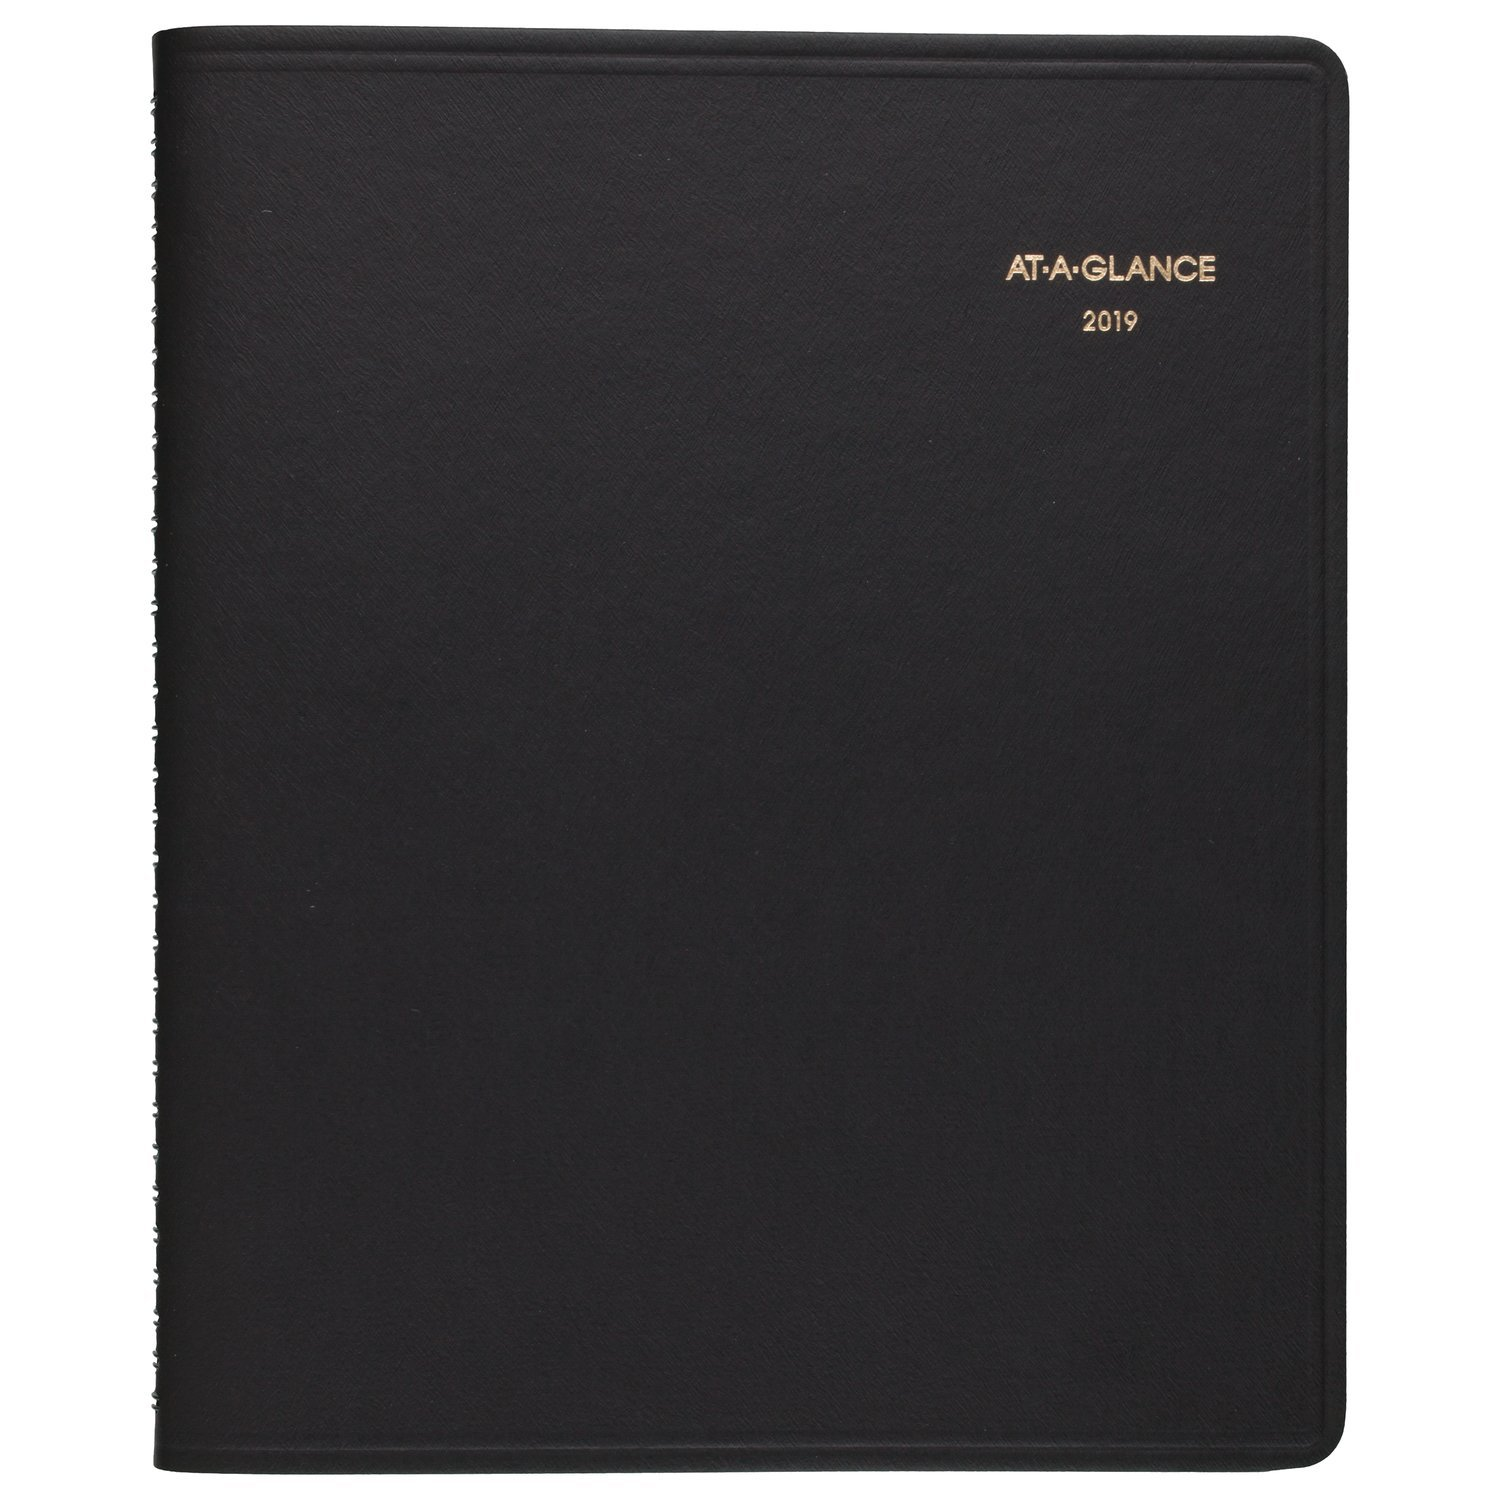 at-A-Glance Monthly Planner, January 2019 - December 2019, 6-7/8'' x 8-3/4'', Medium Size, Black (7012005)